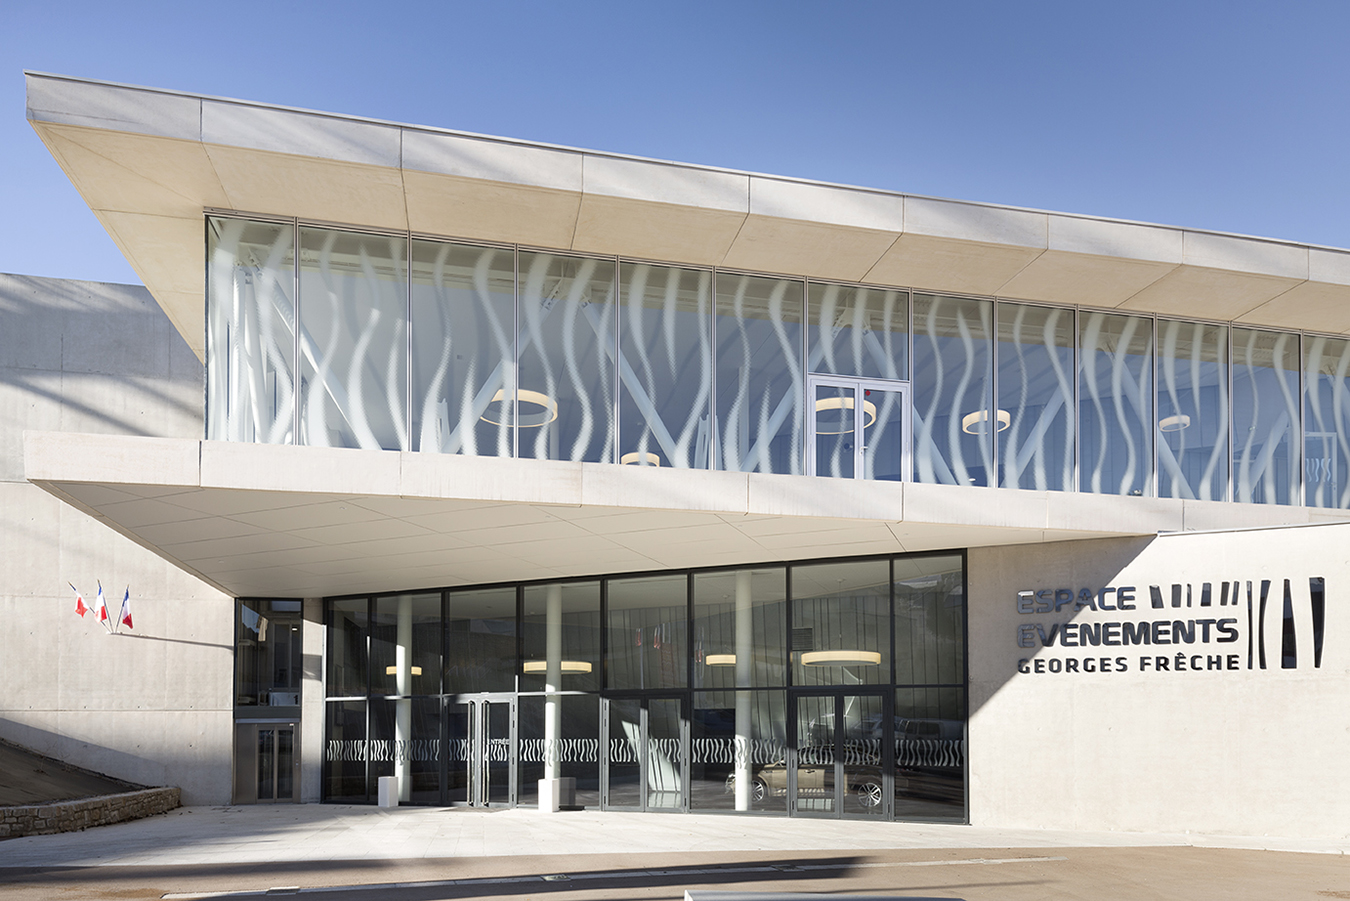 mc-lucat-espace-evenements-georges-freche-mende-a+-architecture-2015